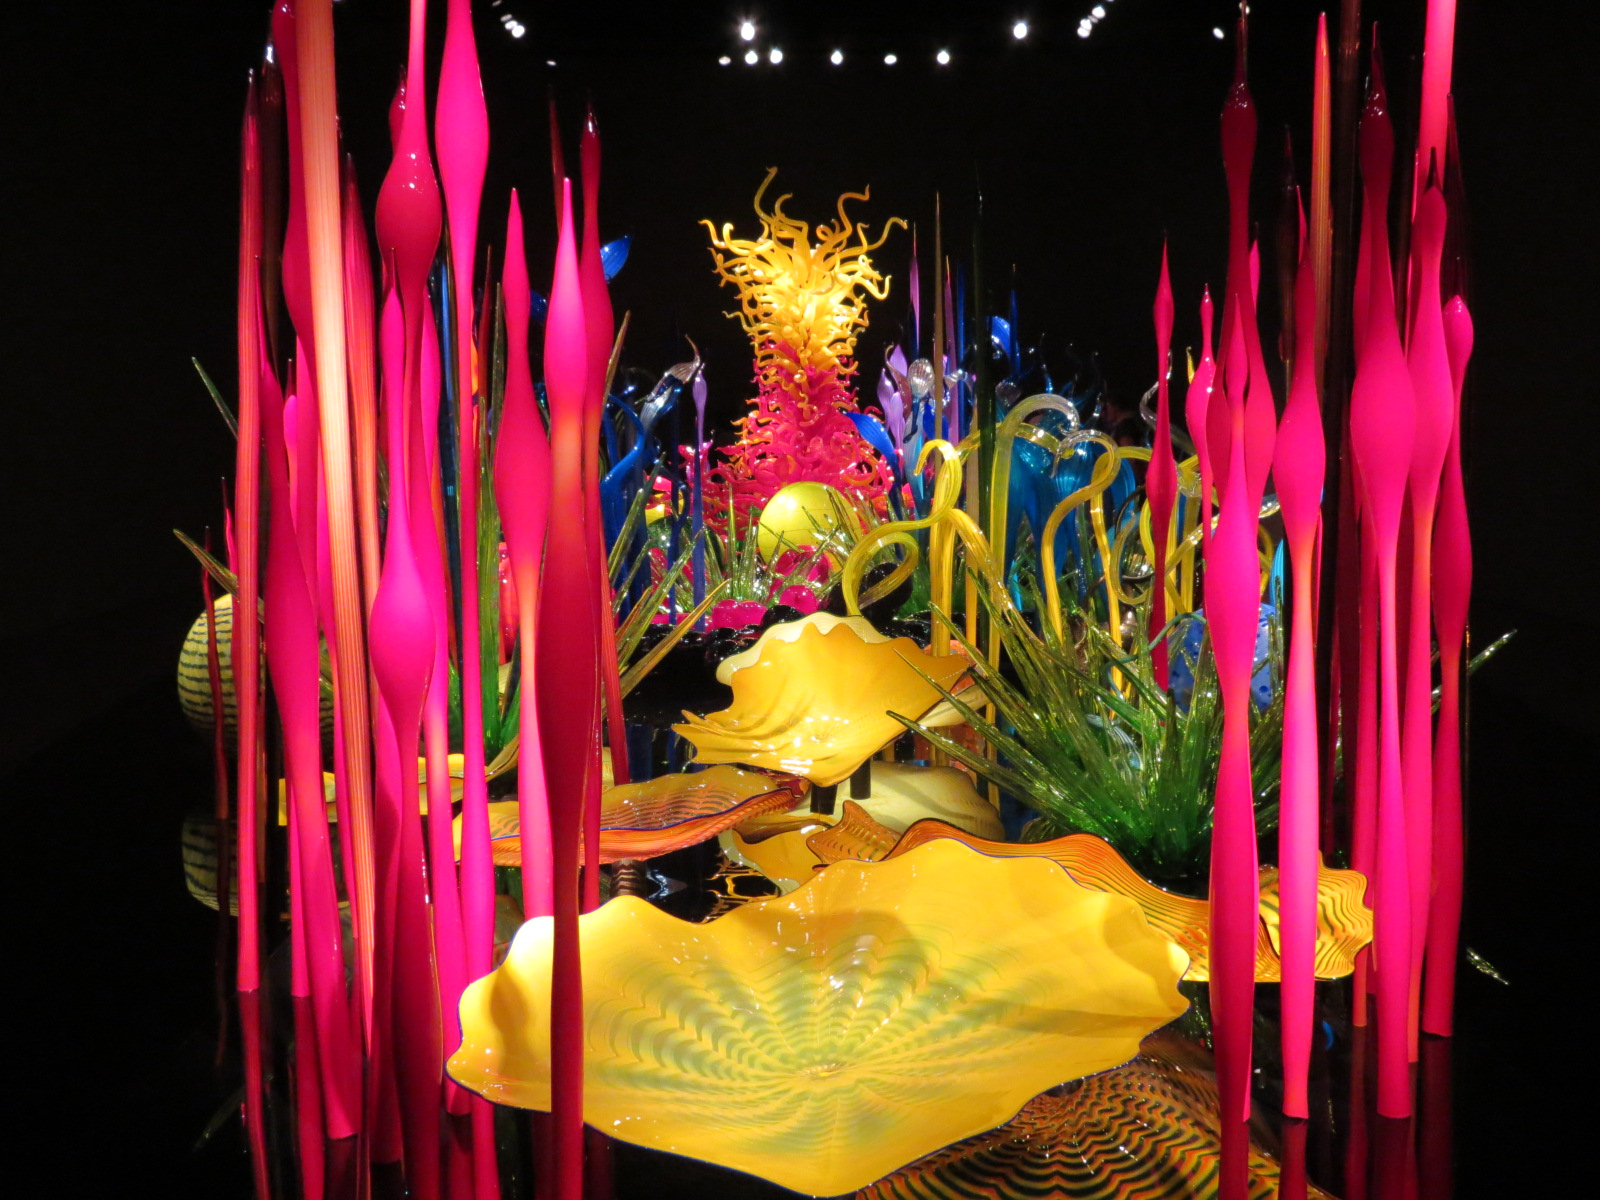 Chihuly's  Mille Fiori, blown glass exhibit